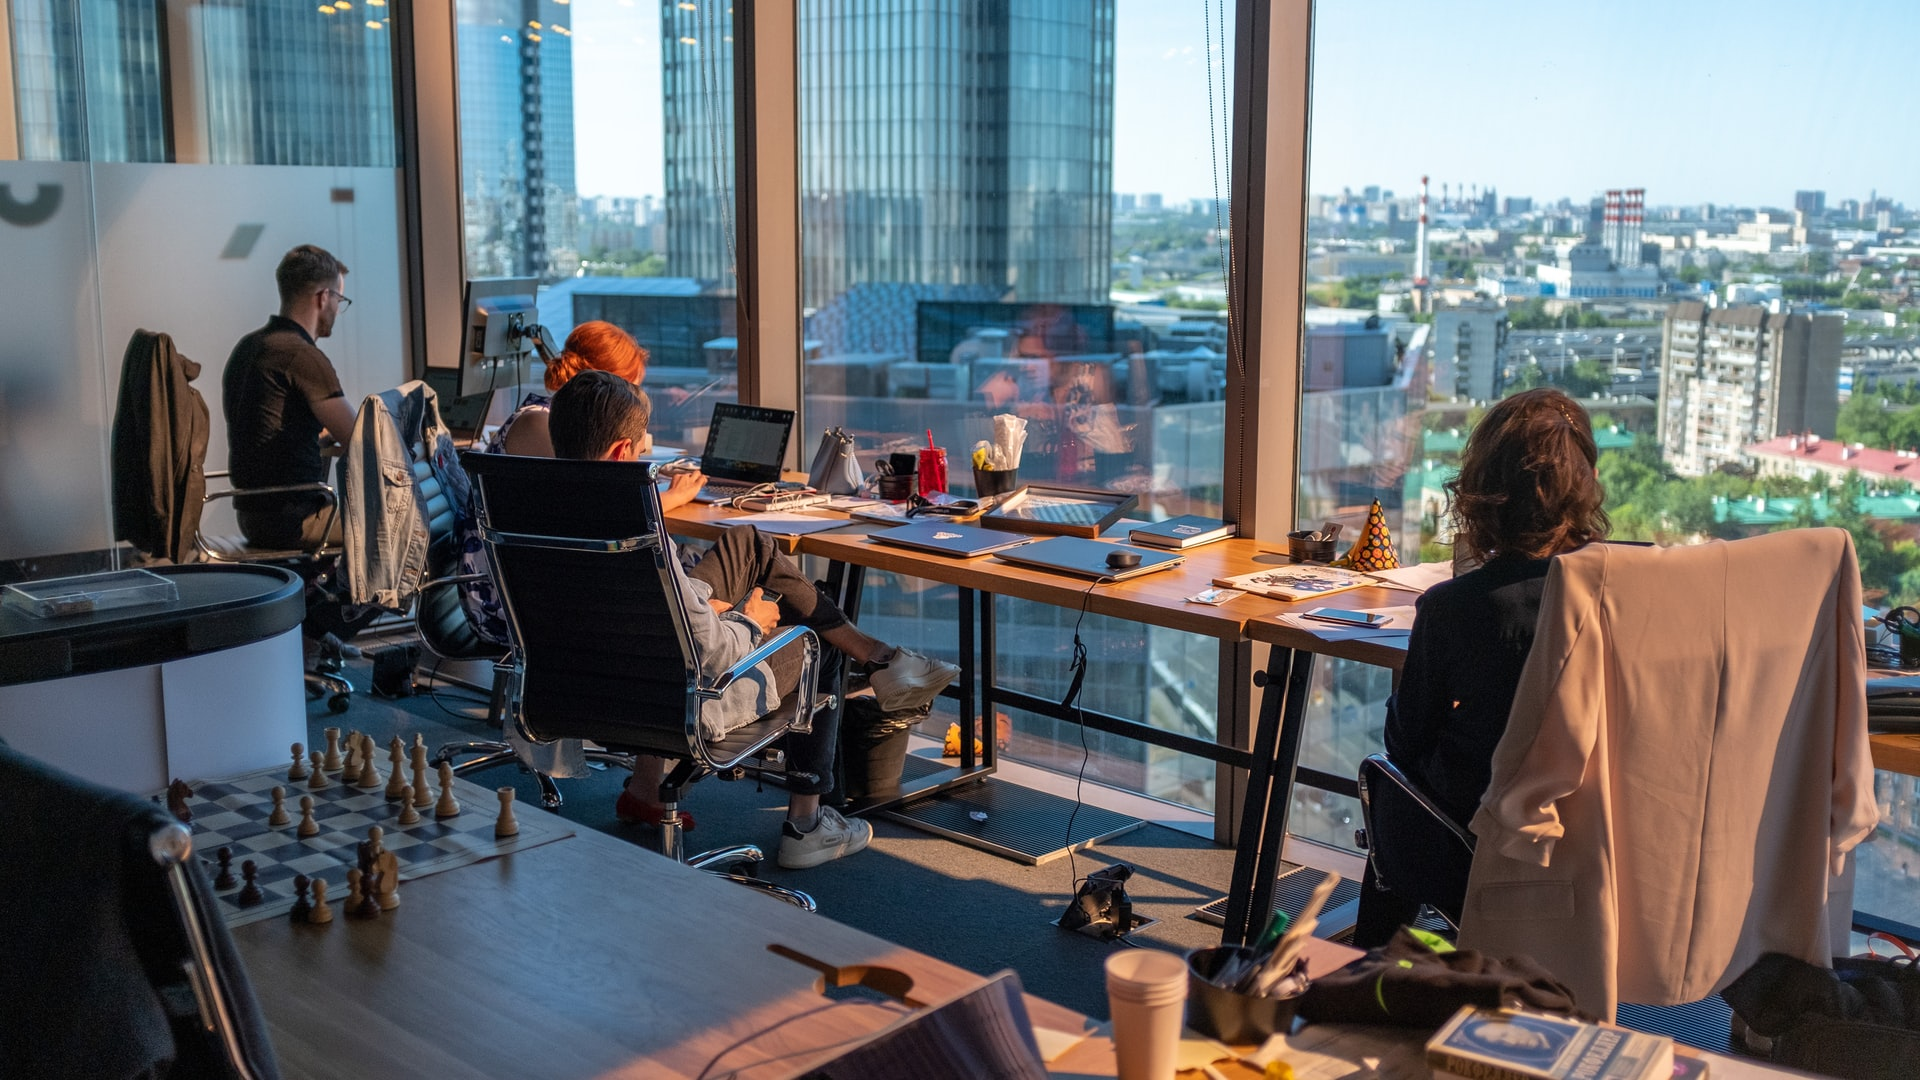 Even Though The World Is Going Remote Here's Why You Should Still Consider An Office